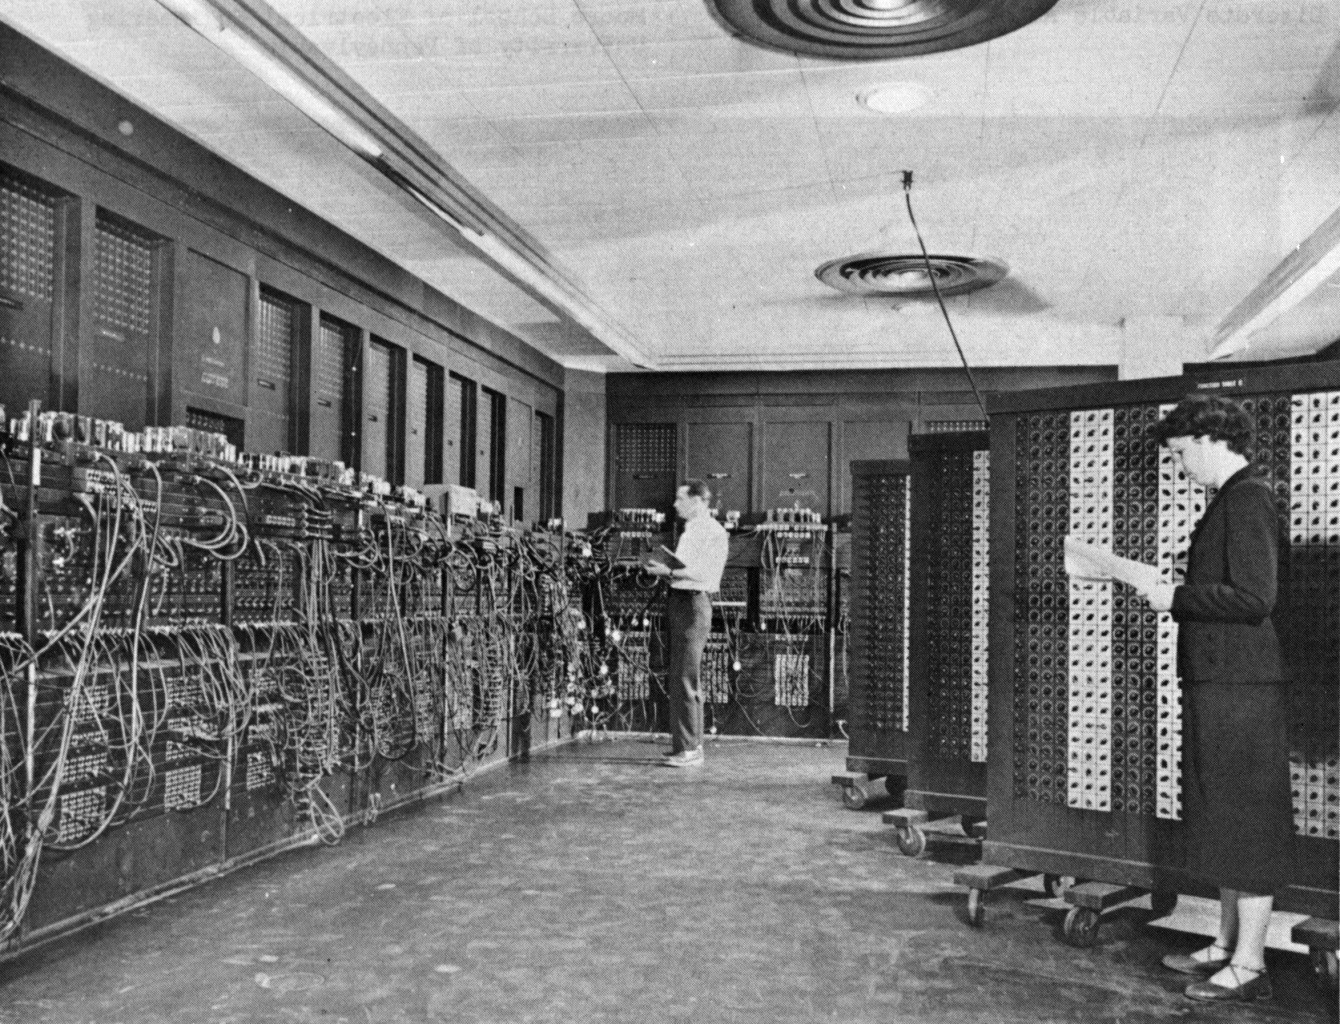 ENIAC (Electronic Numerical Integrator and Computer), 1946